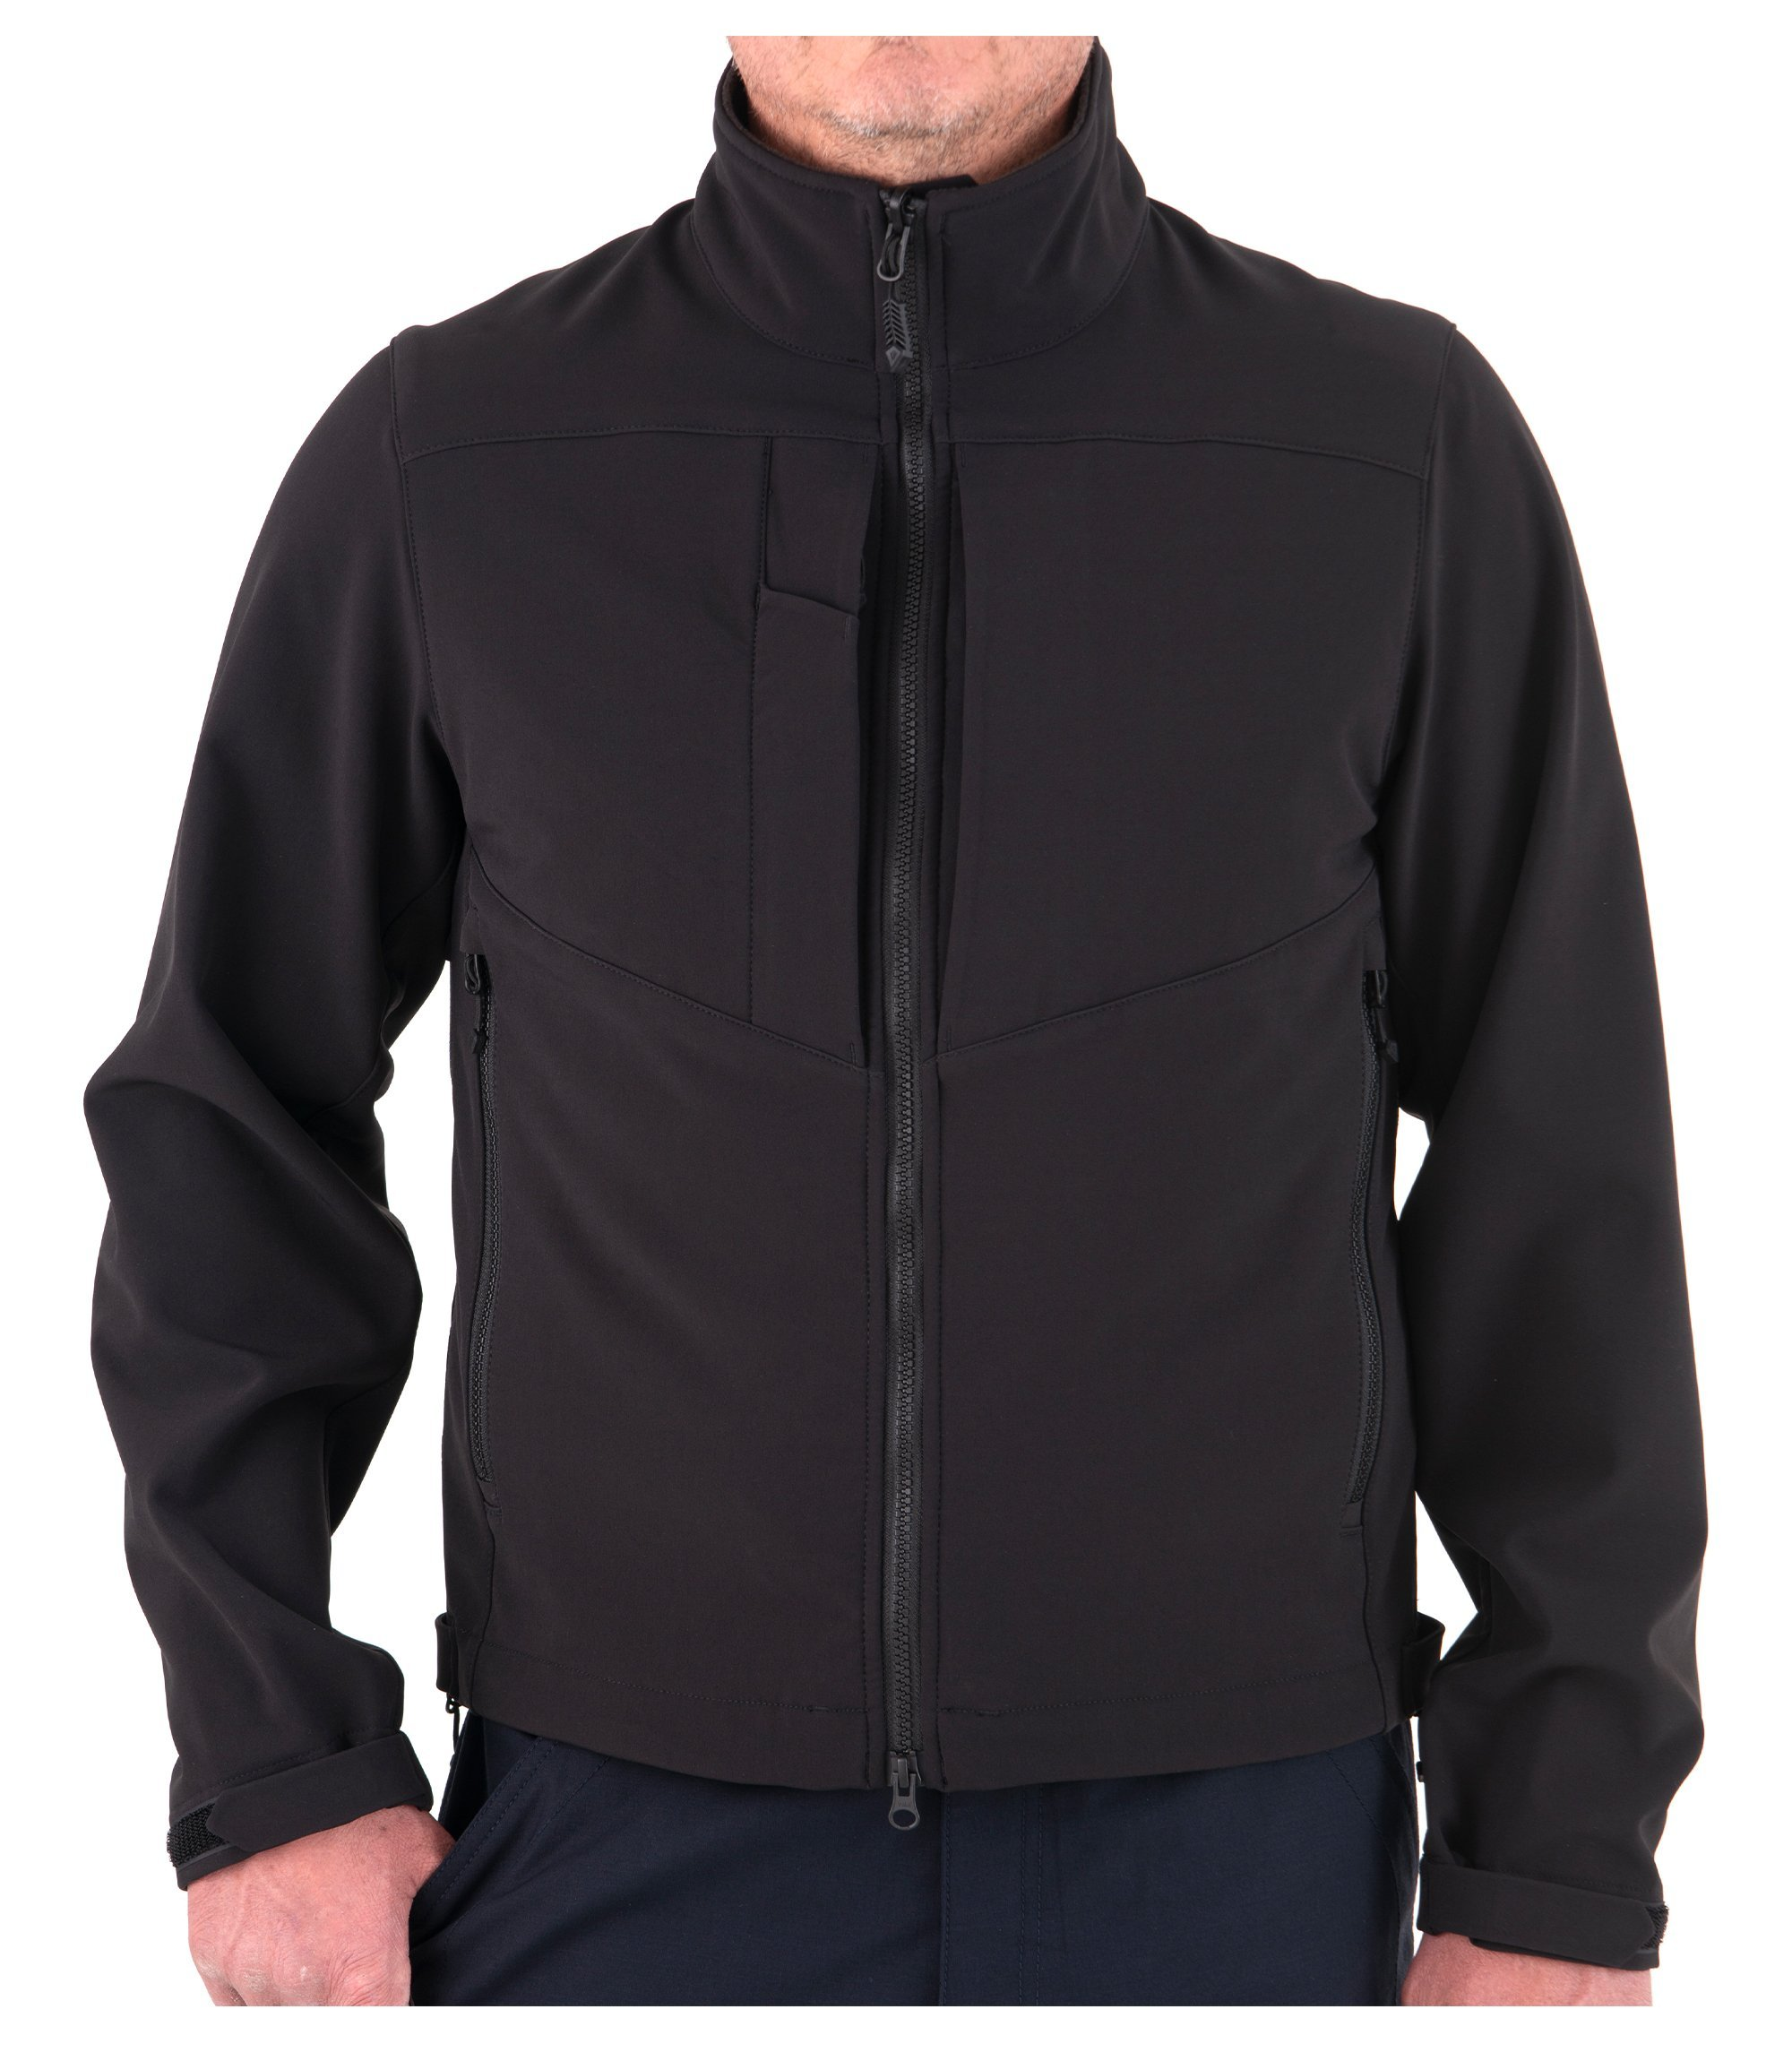 Men's Tactix Series Softshell Duty Jacket